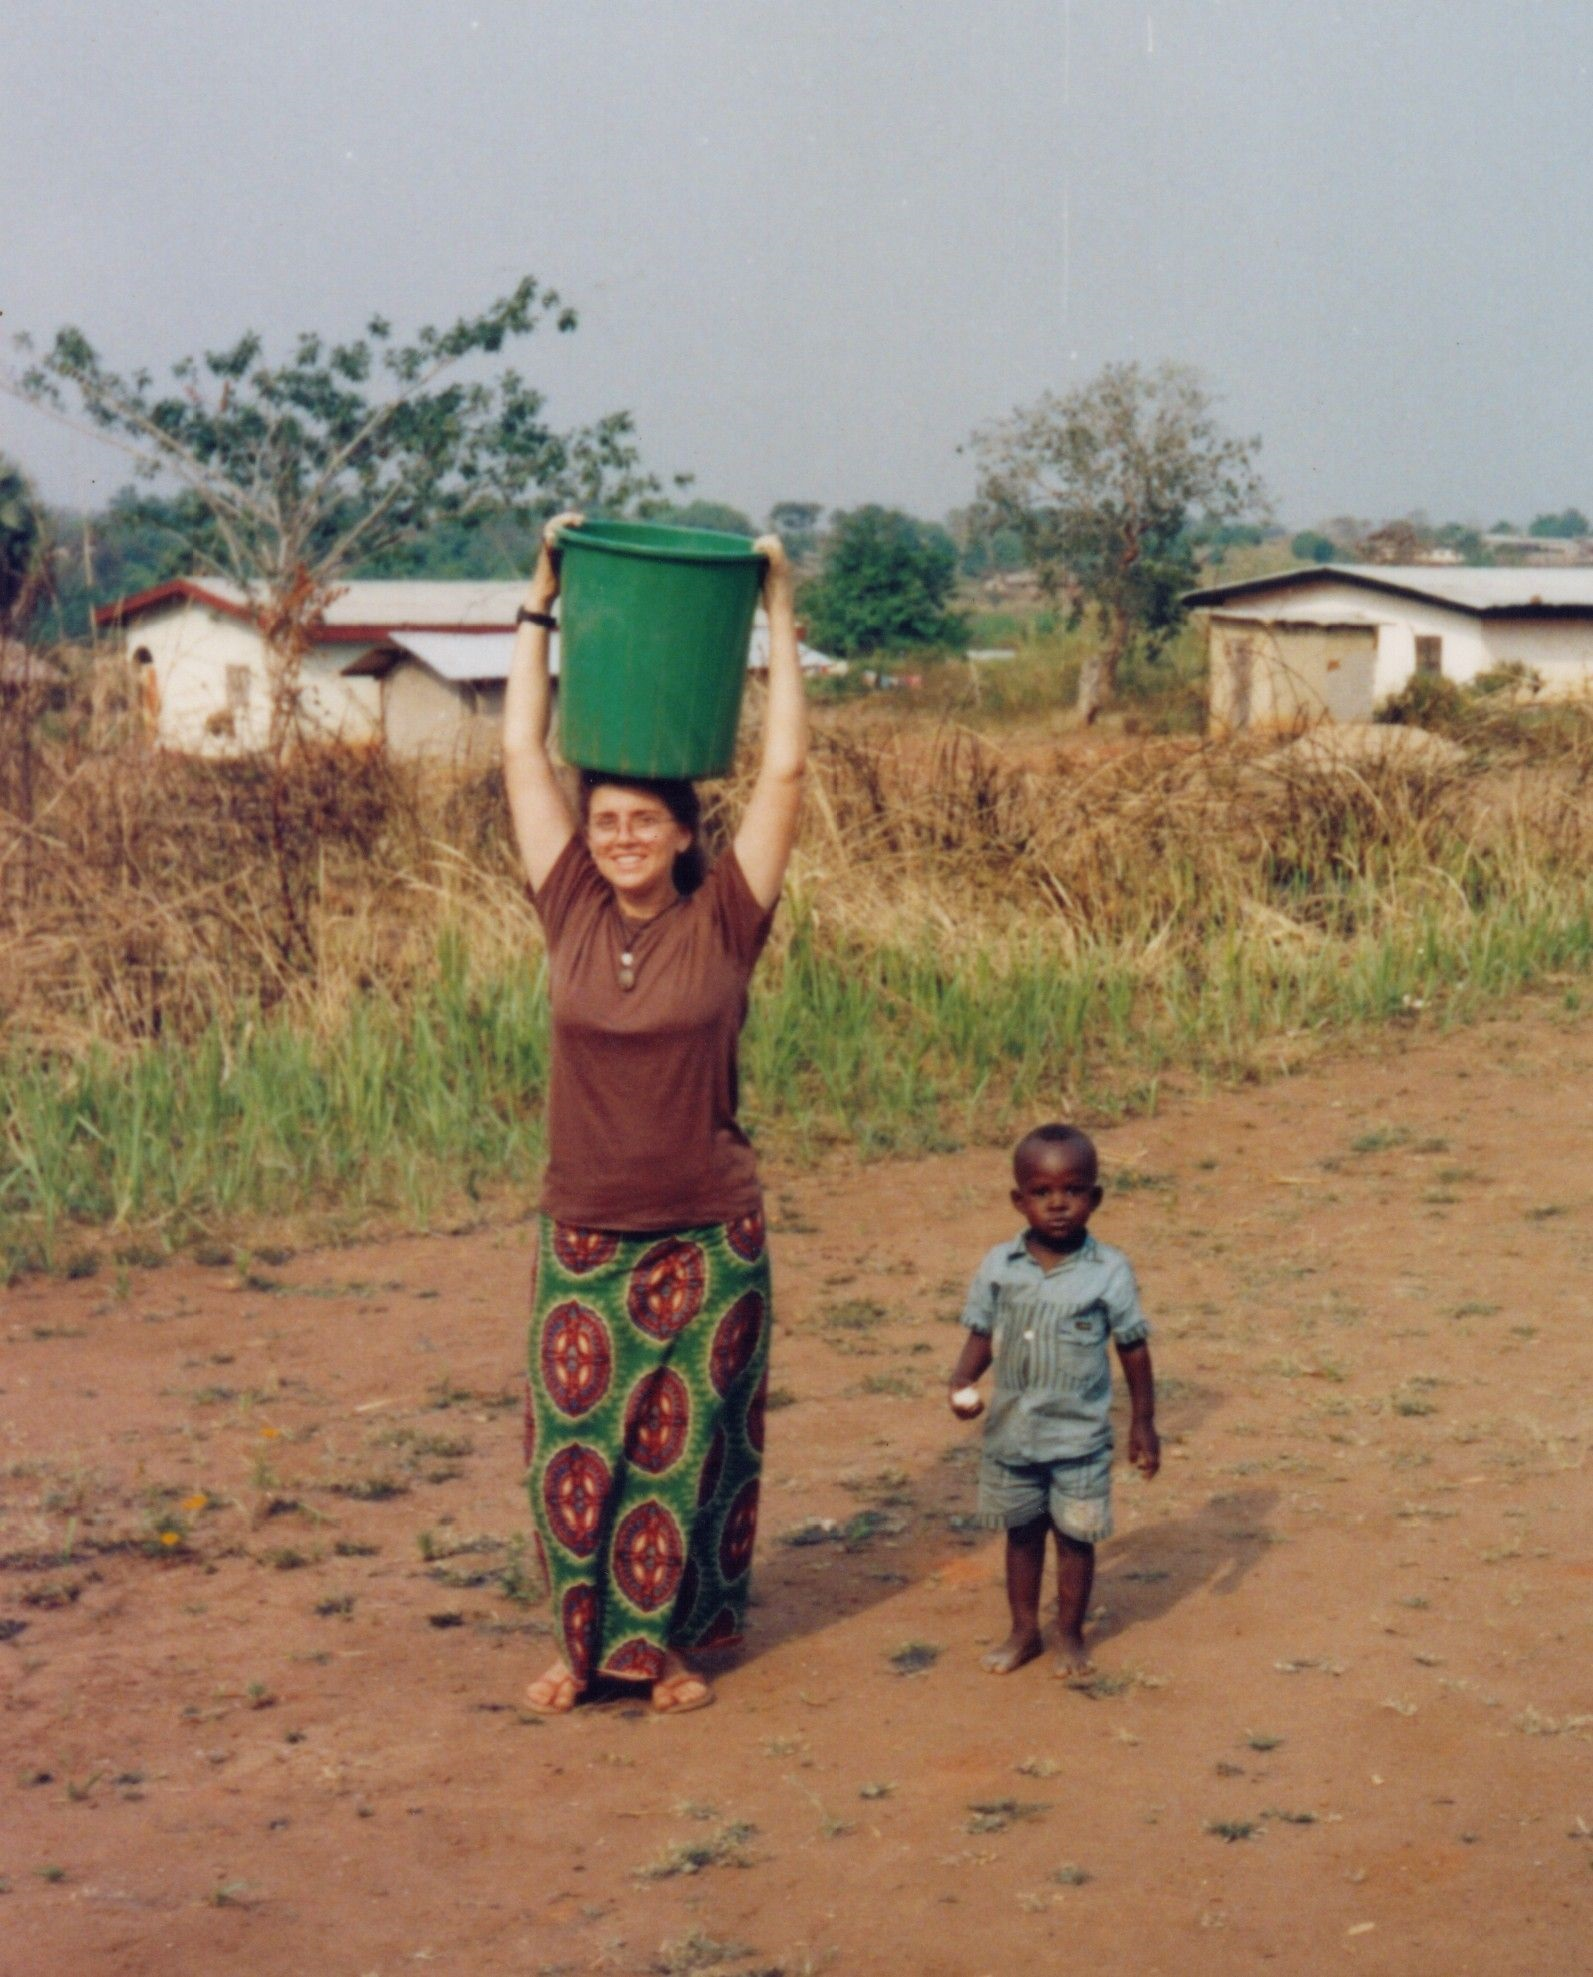 NAOMI KOVACSPresident - CAMEROON 1995-1998Community DevelopmentLanguages spoken during service: French & Fulfulde